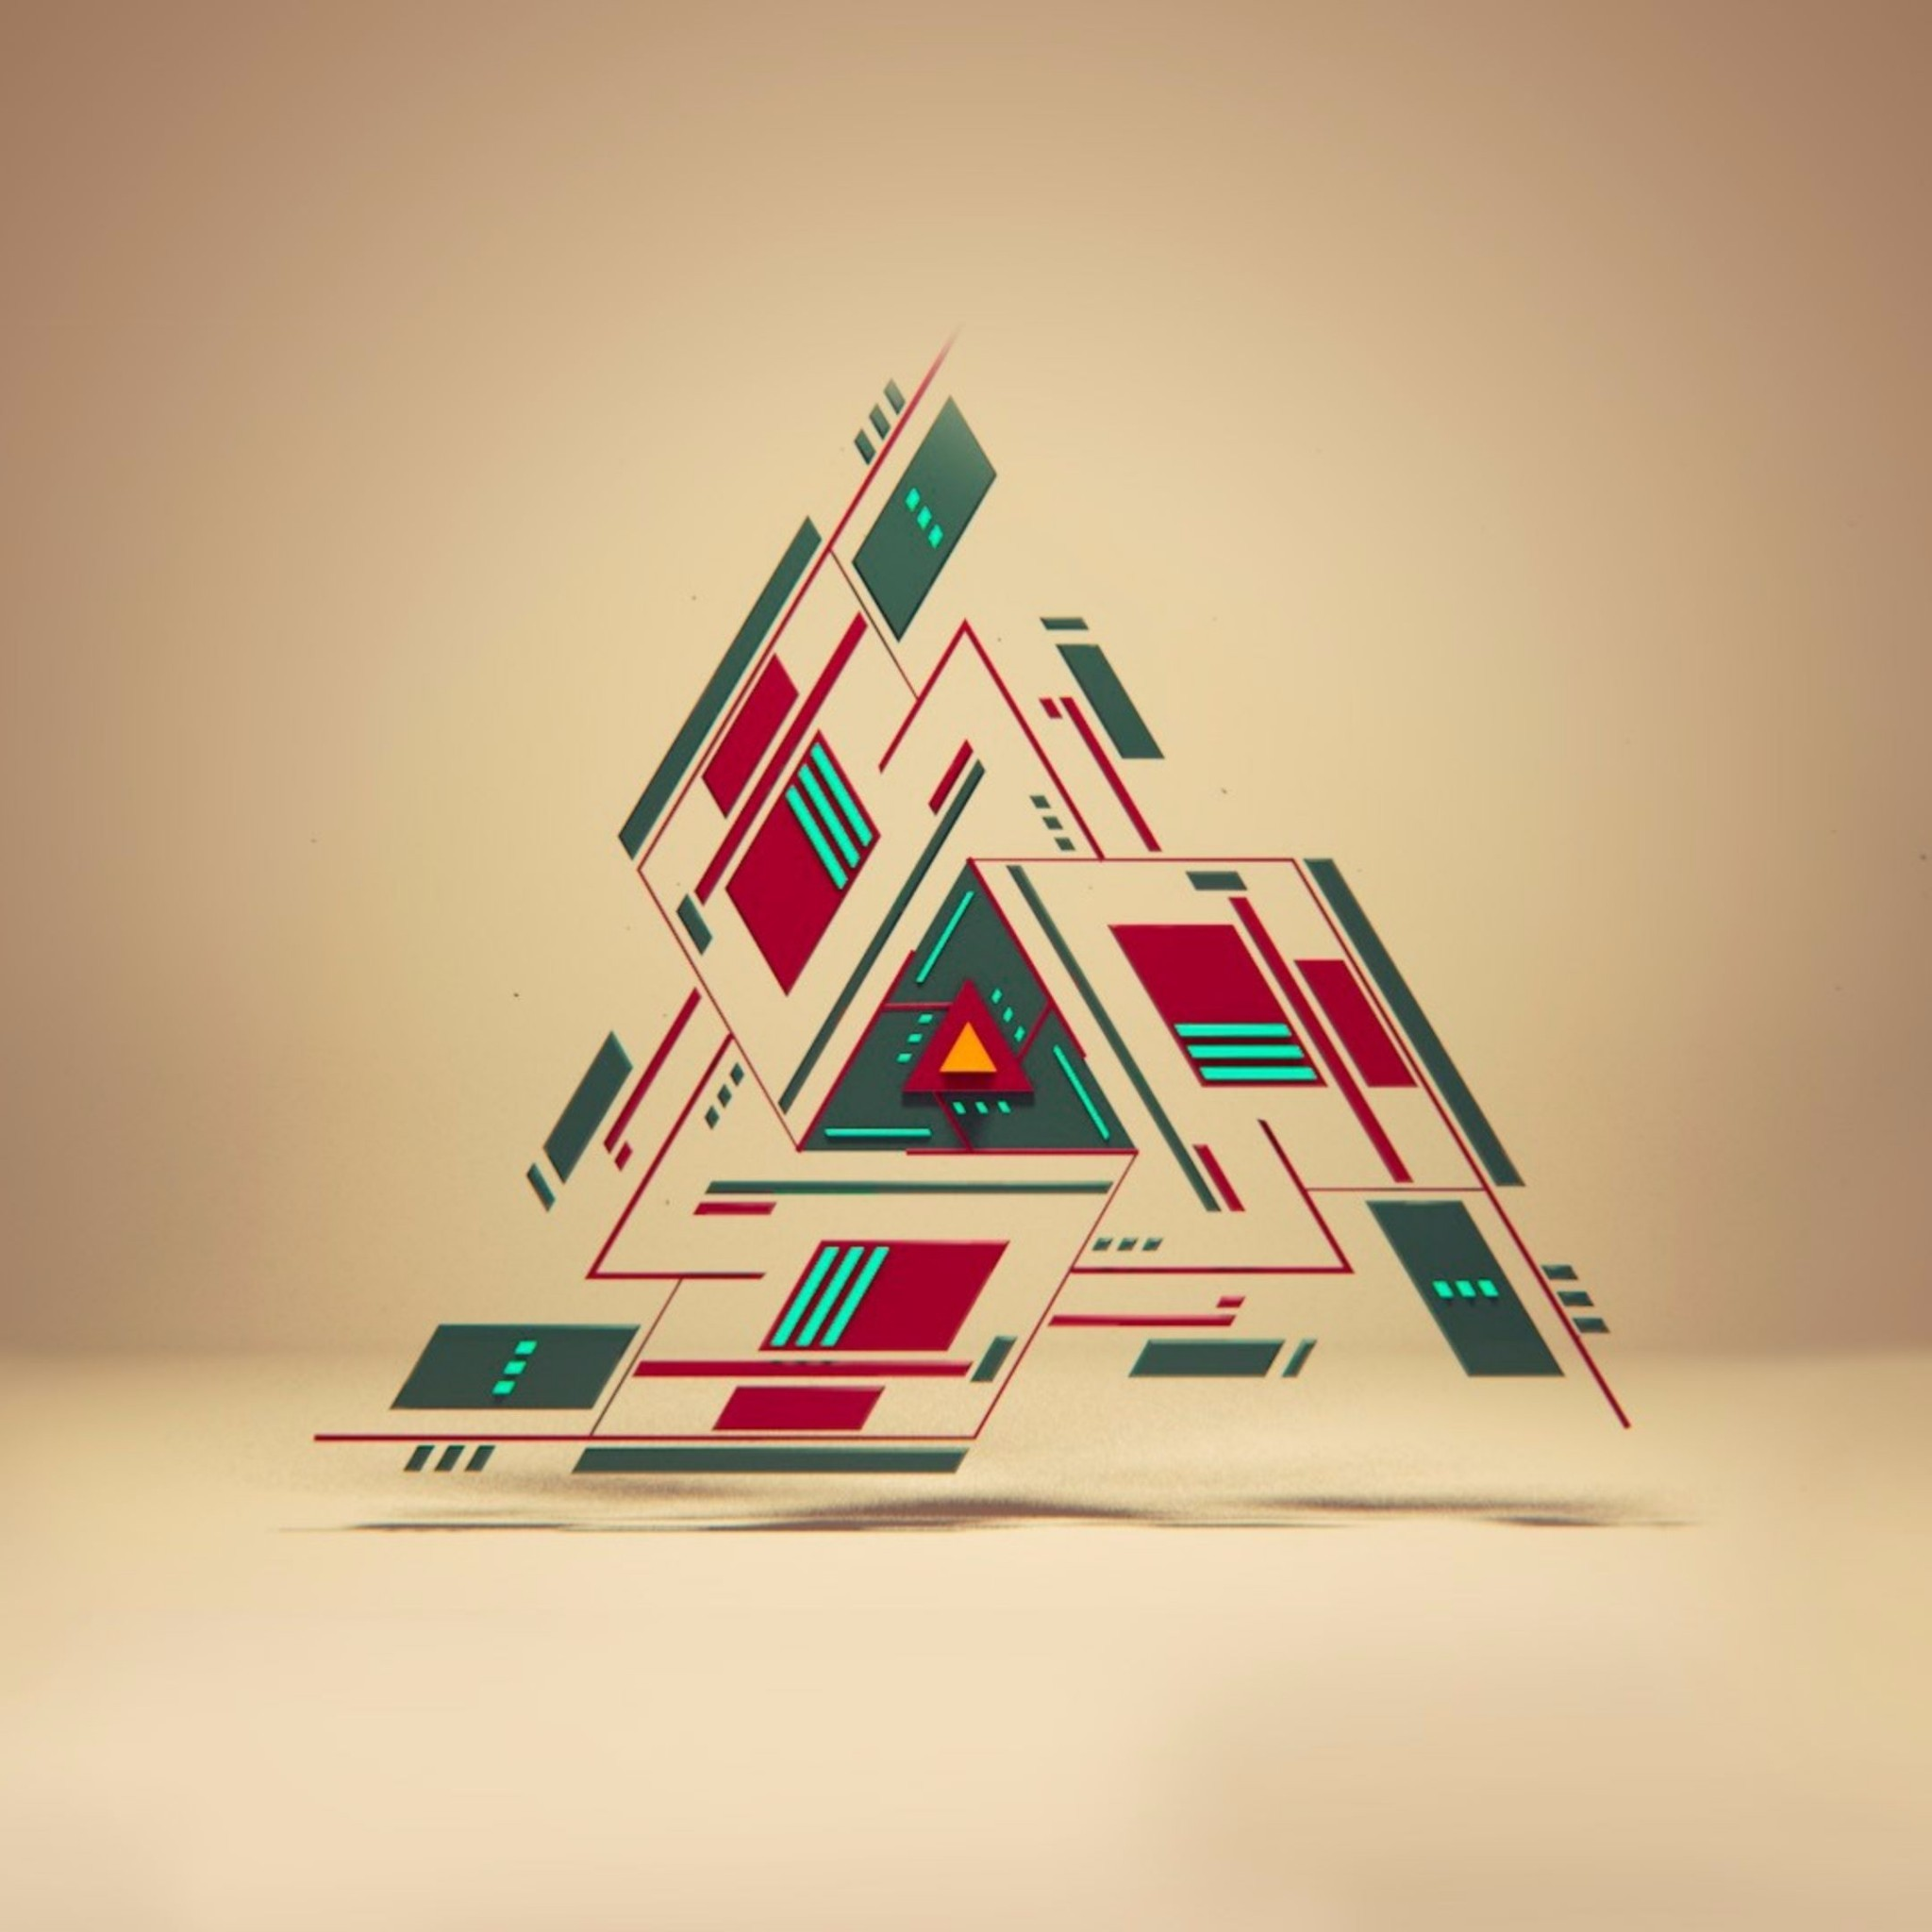 Related to Digital Triangle 4K Abstract Wallpapers